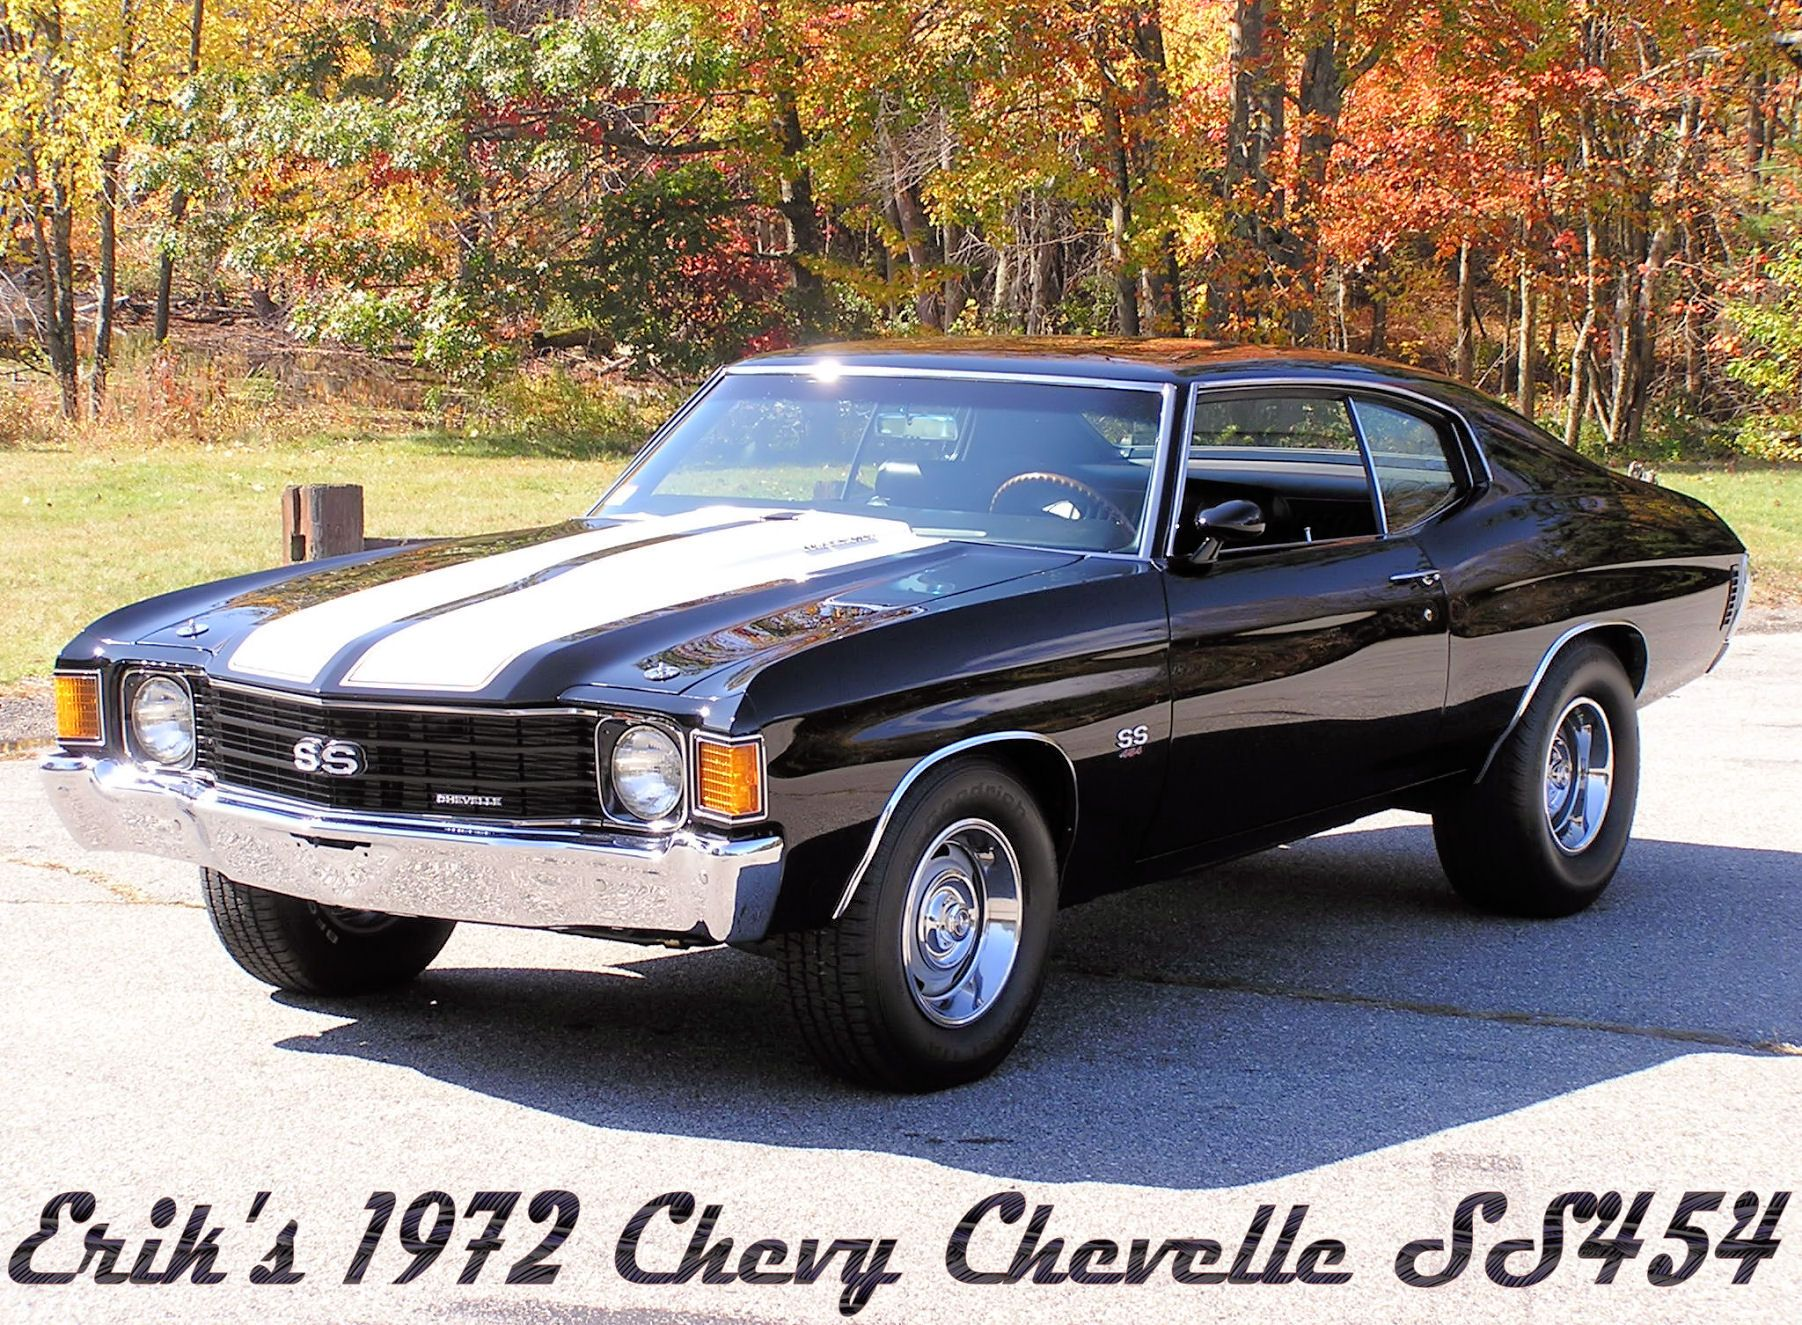 72 Chevelle Ss454 Classic Cars Muscle Classic Cars Muscle Cars